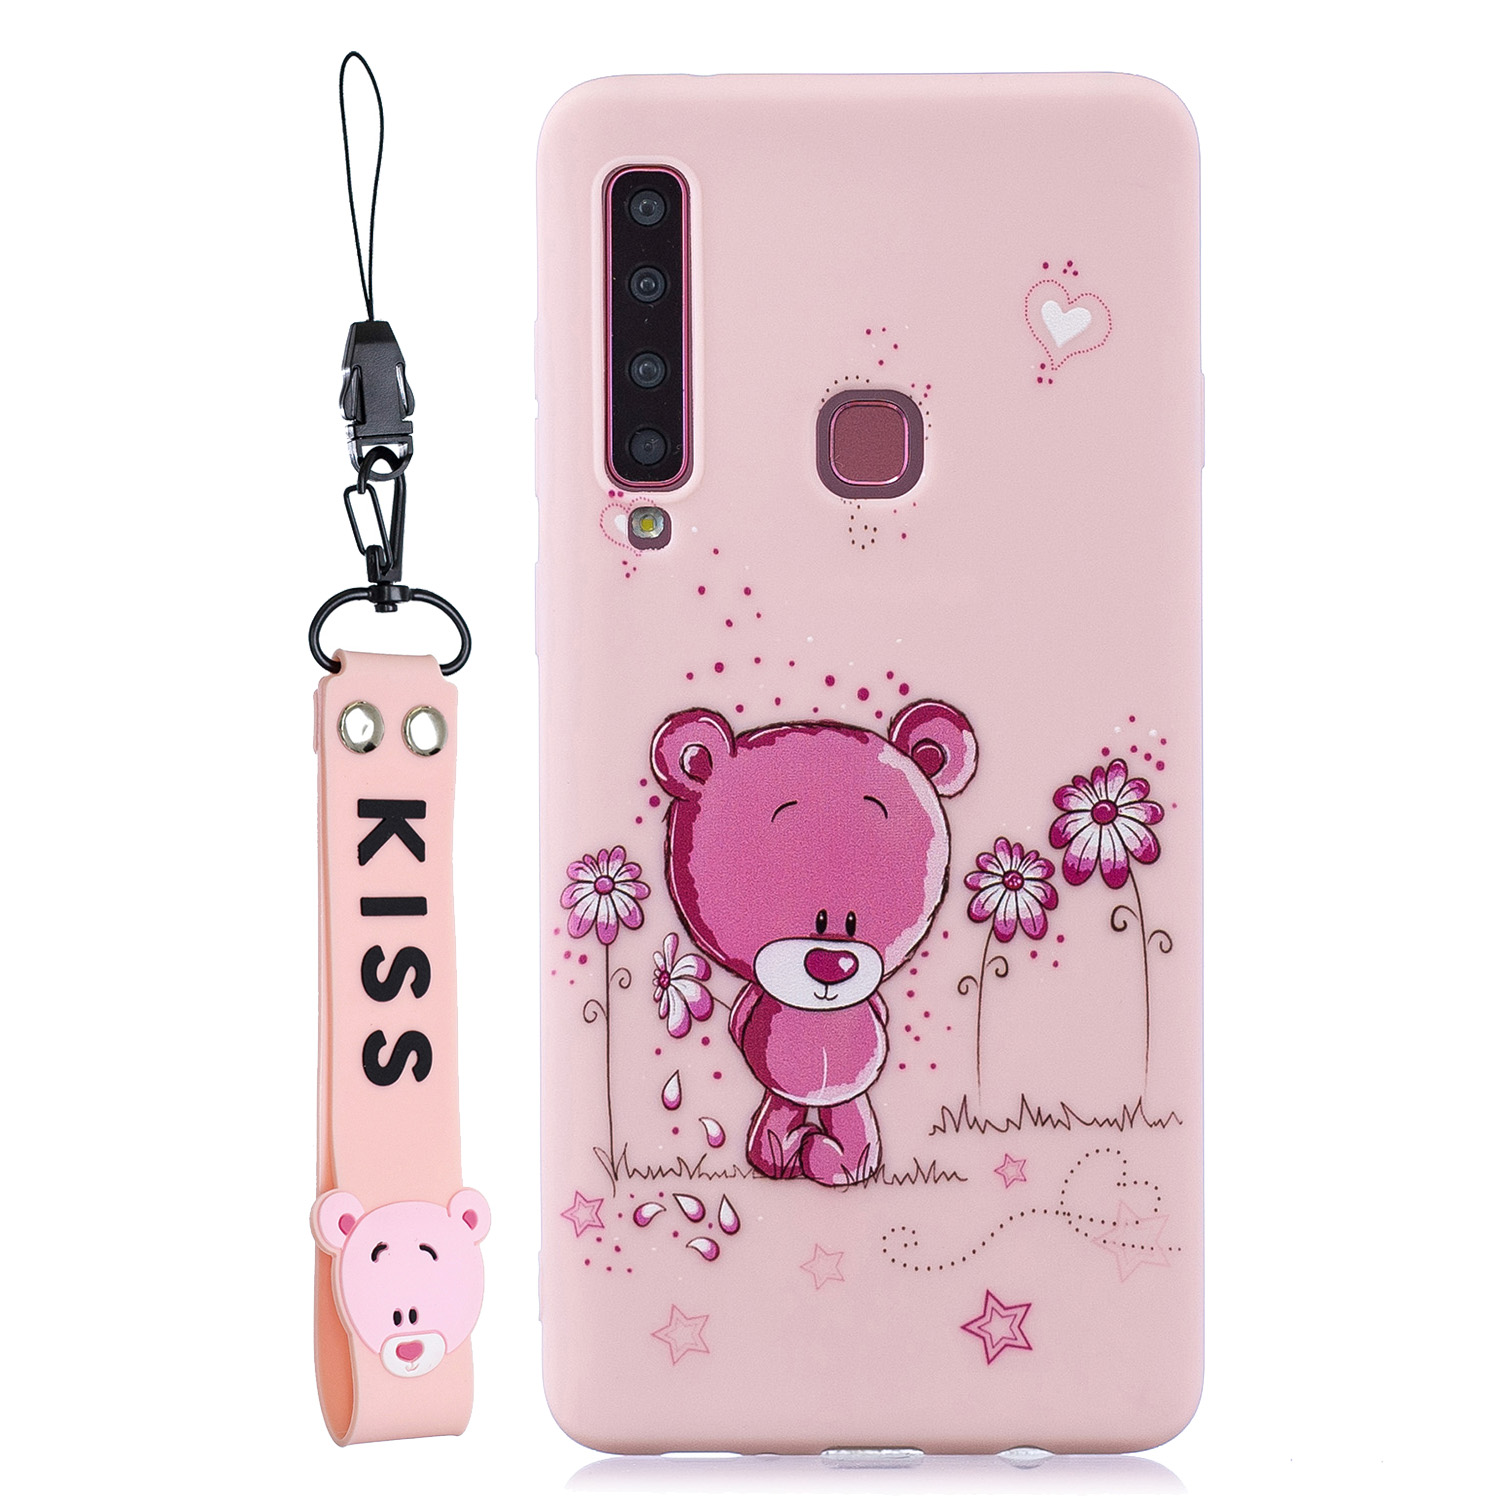 For Samsung A9 2018 Cartoon Lovely Coloured Painted Soft TPU Back Cover Non-slip Shockproof Full Protective Case with Lanyard Light pink